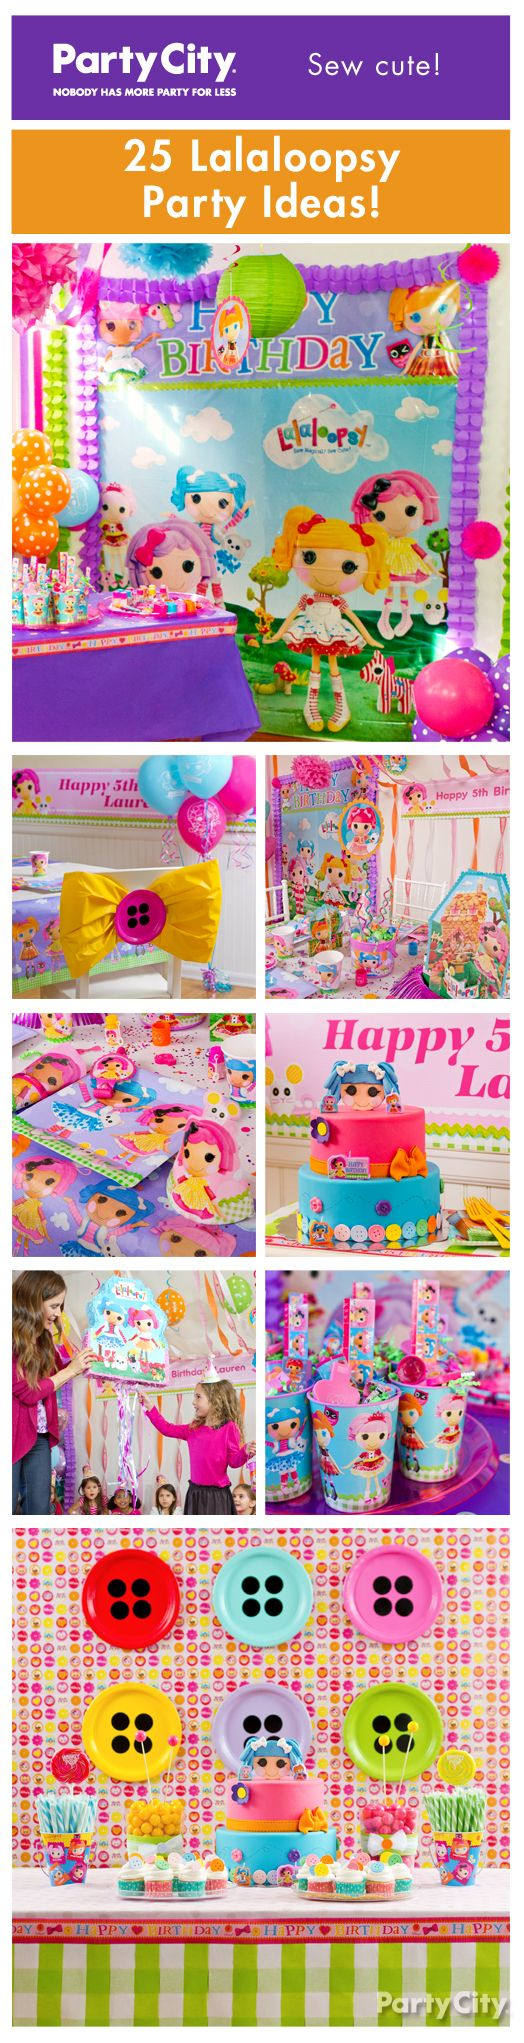 Easy-peasy party ideas she'll la-la-love! Celebrate your doll's big day with a Lalaloopsy birthday party that is *sew* cute!